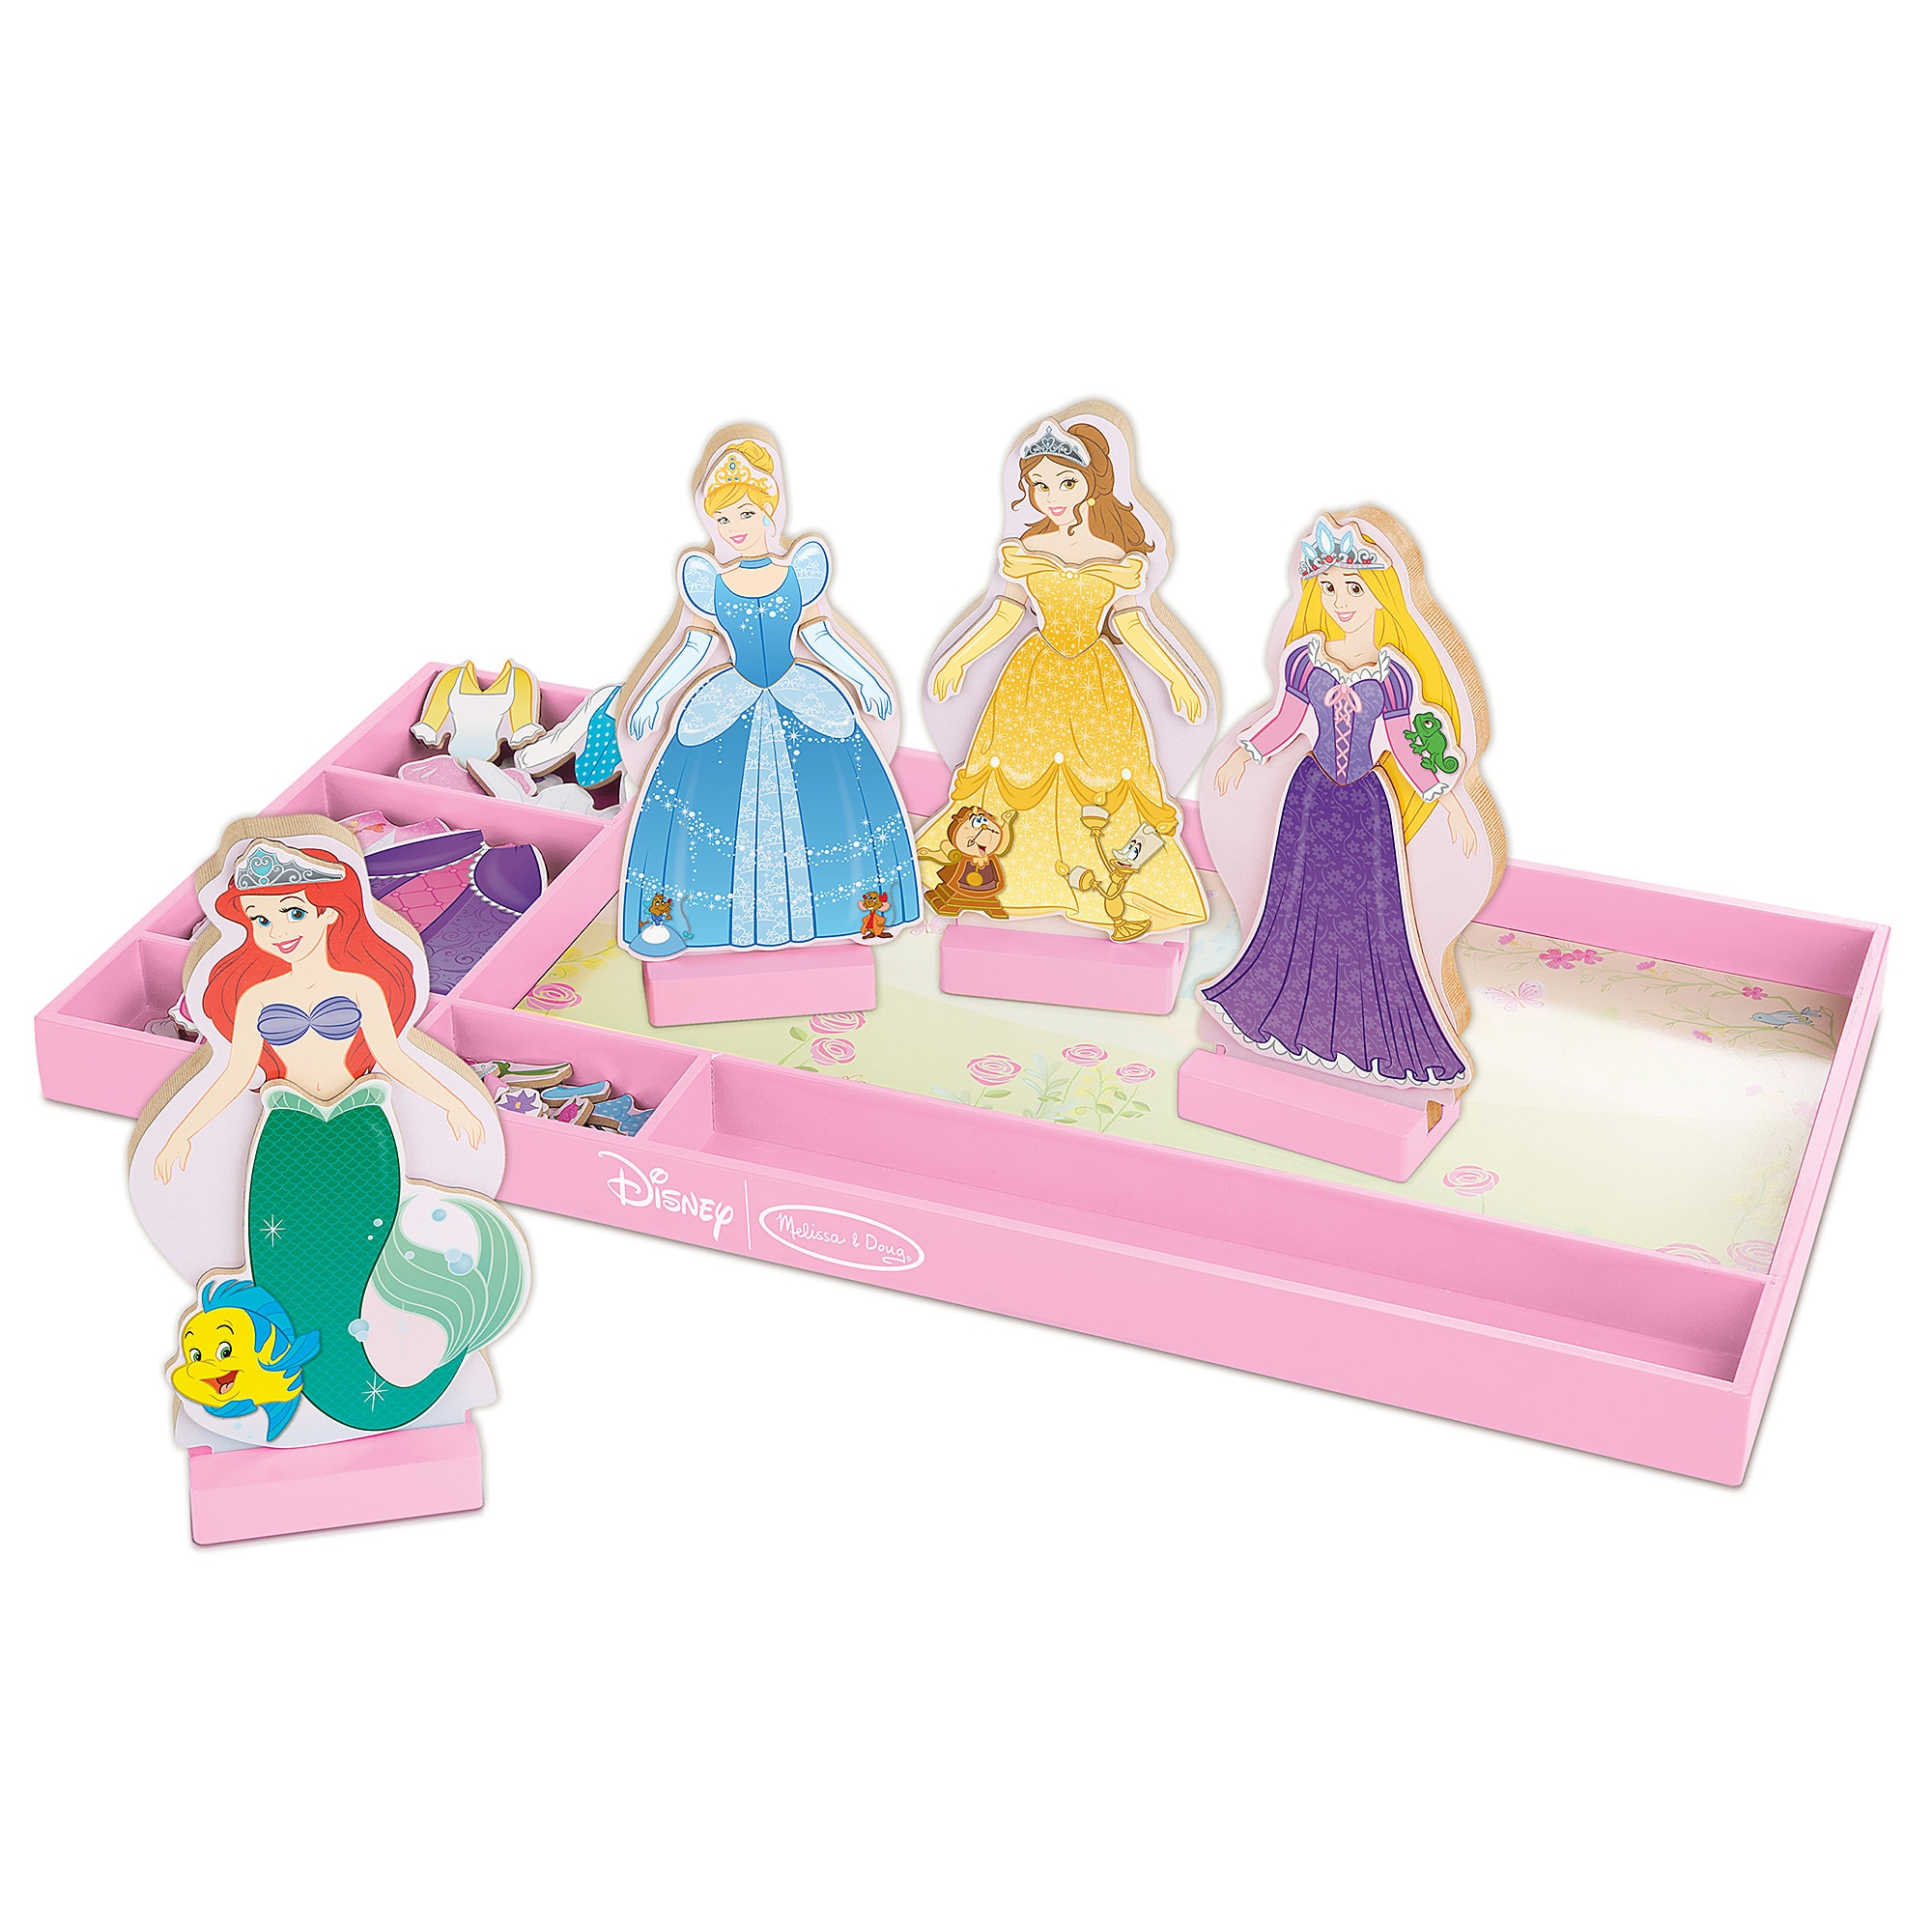 Disney Princess Deluxe Wooden Magnetic Dress-Up Set by Melissa & Doug